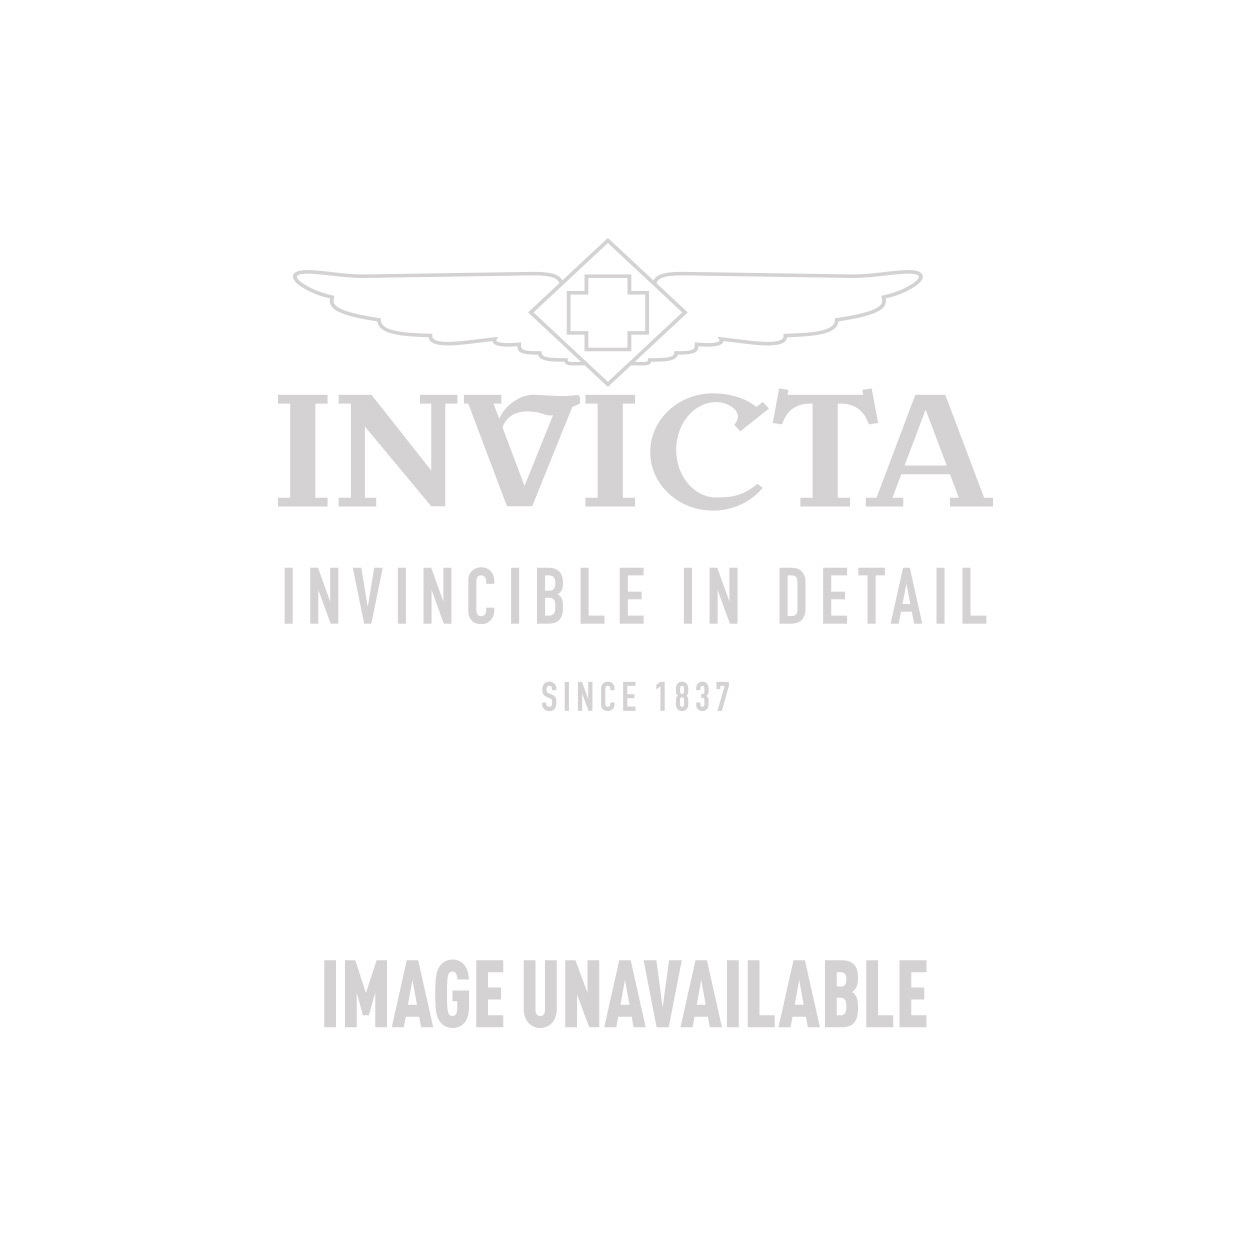 Invicta Aviator Swiss Movement Quartz Watch - Black case with Black tone Polyurethane band - Model 1748